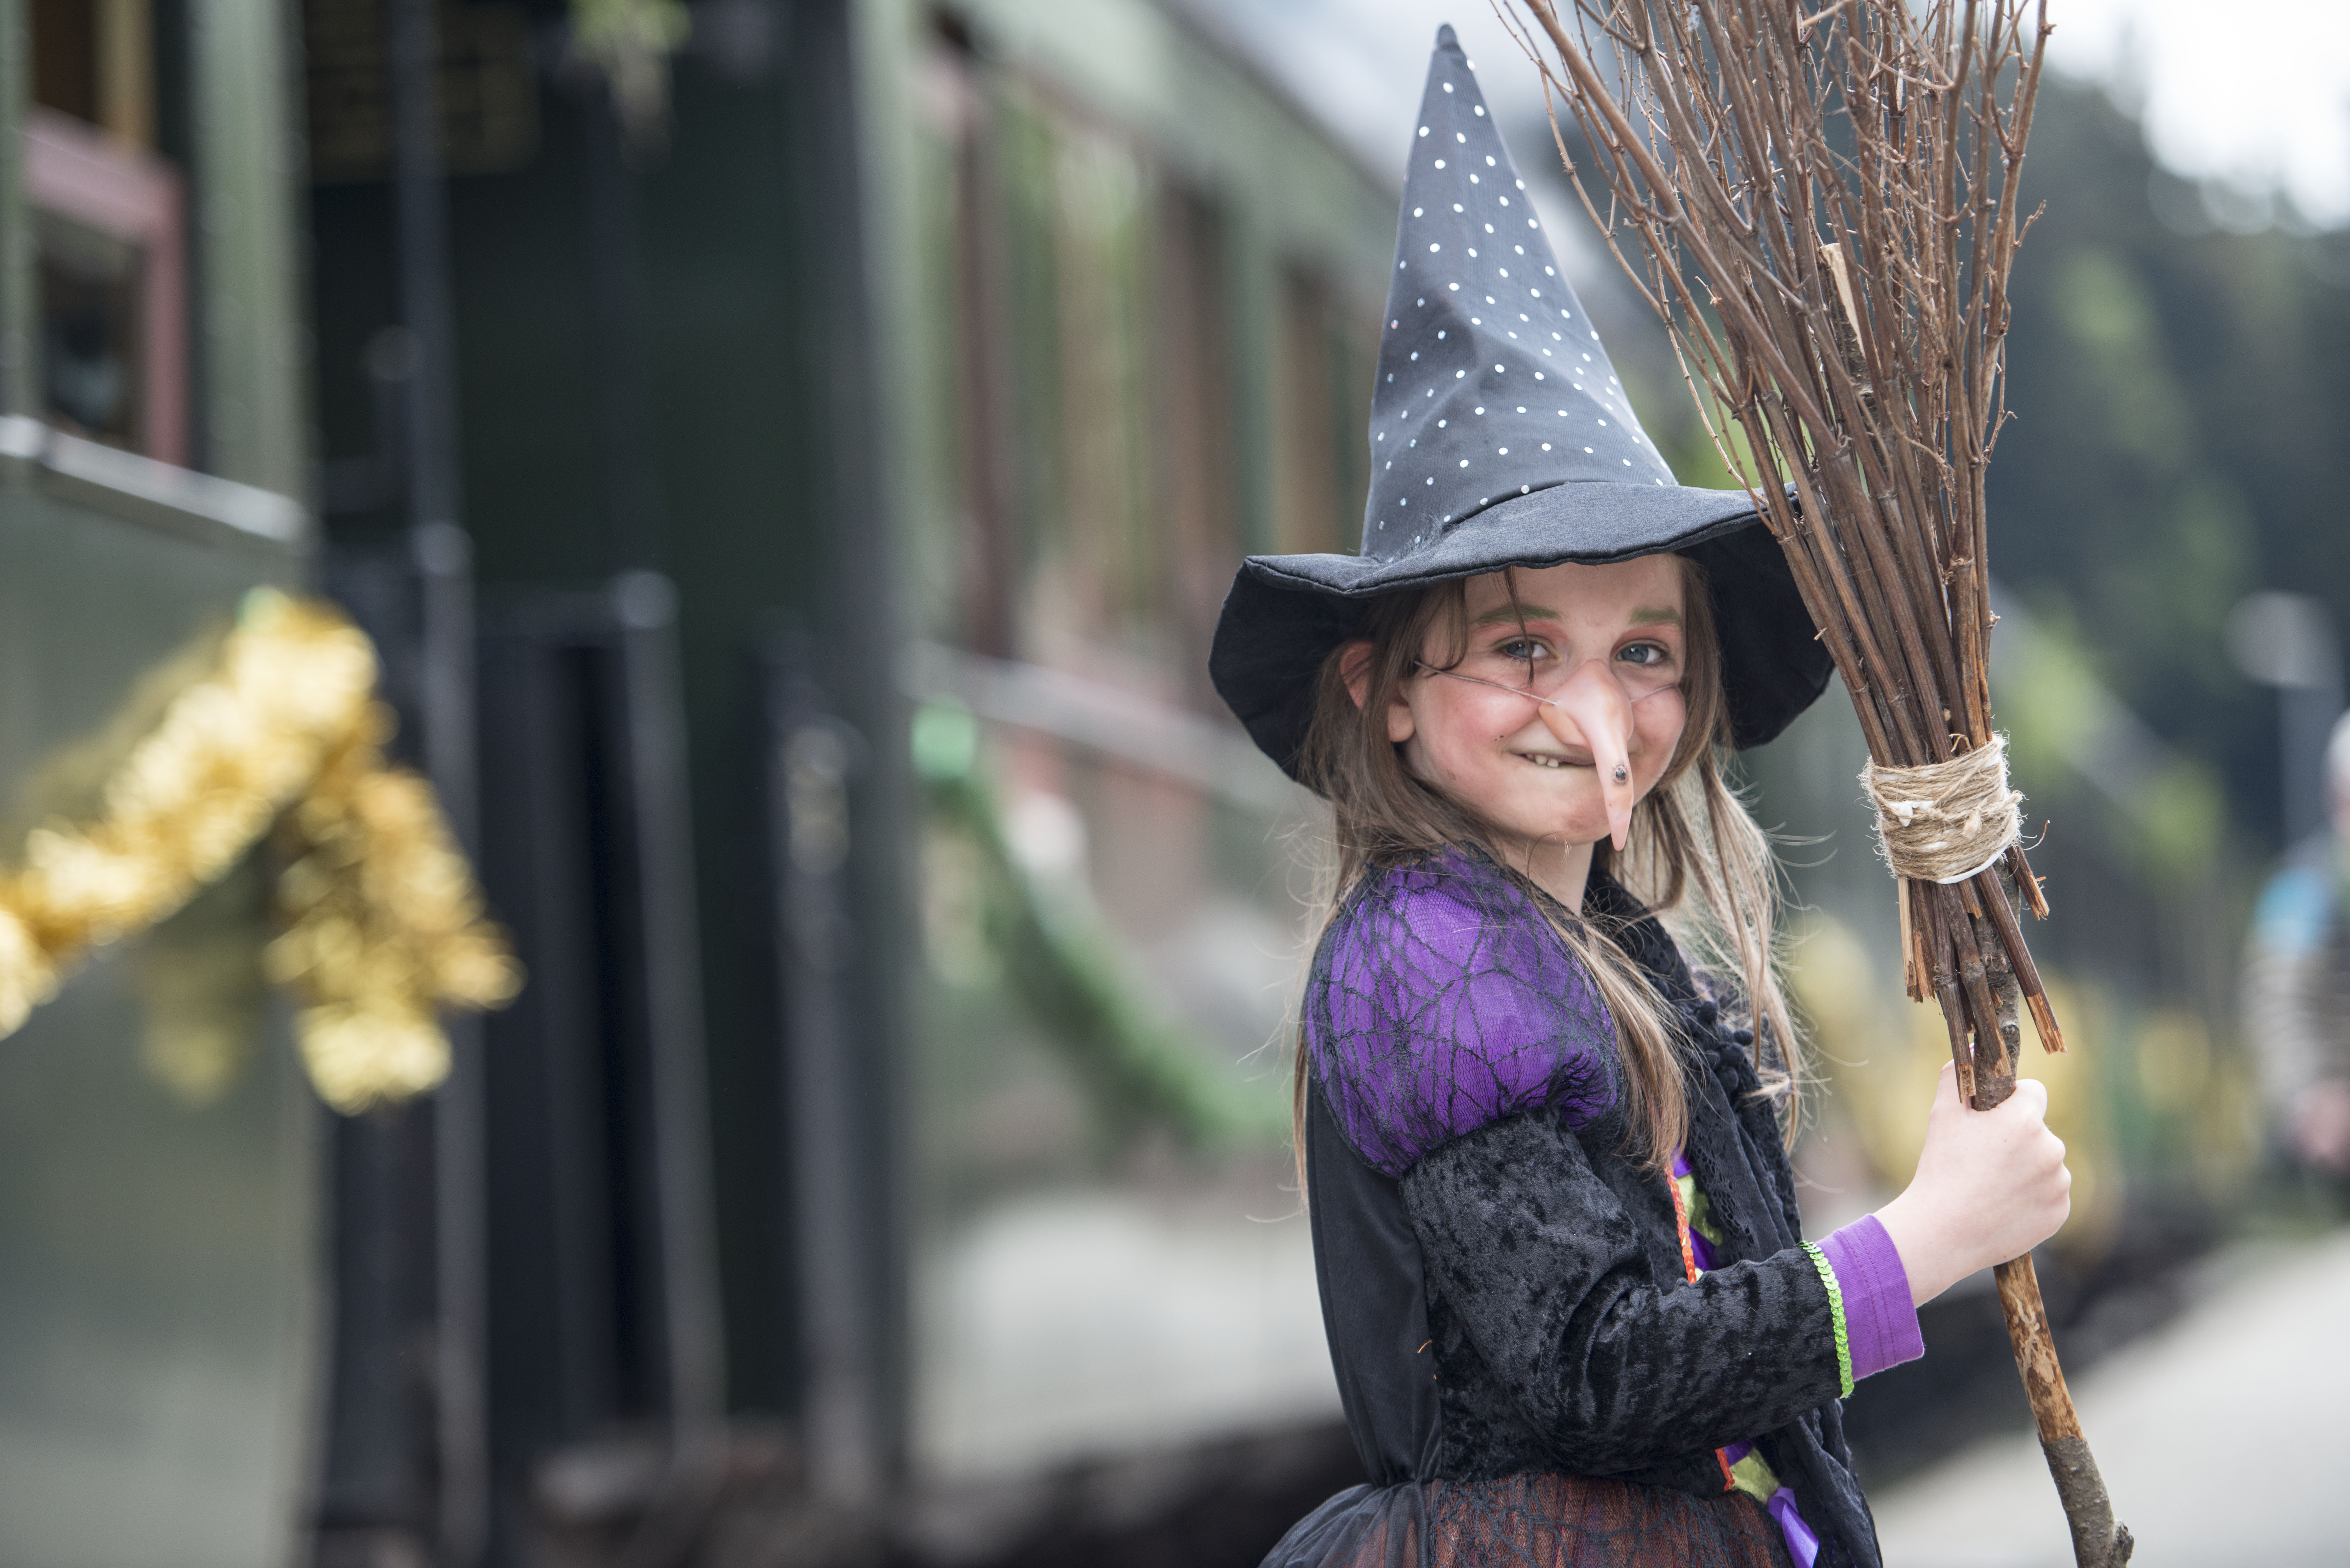 A little girl wearing a Halloween witch costume